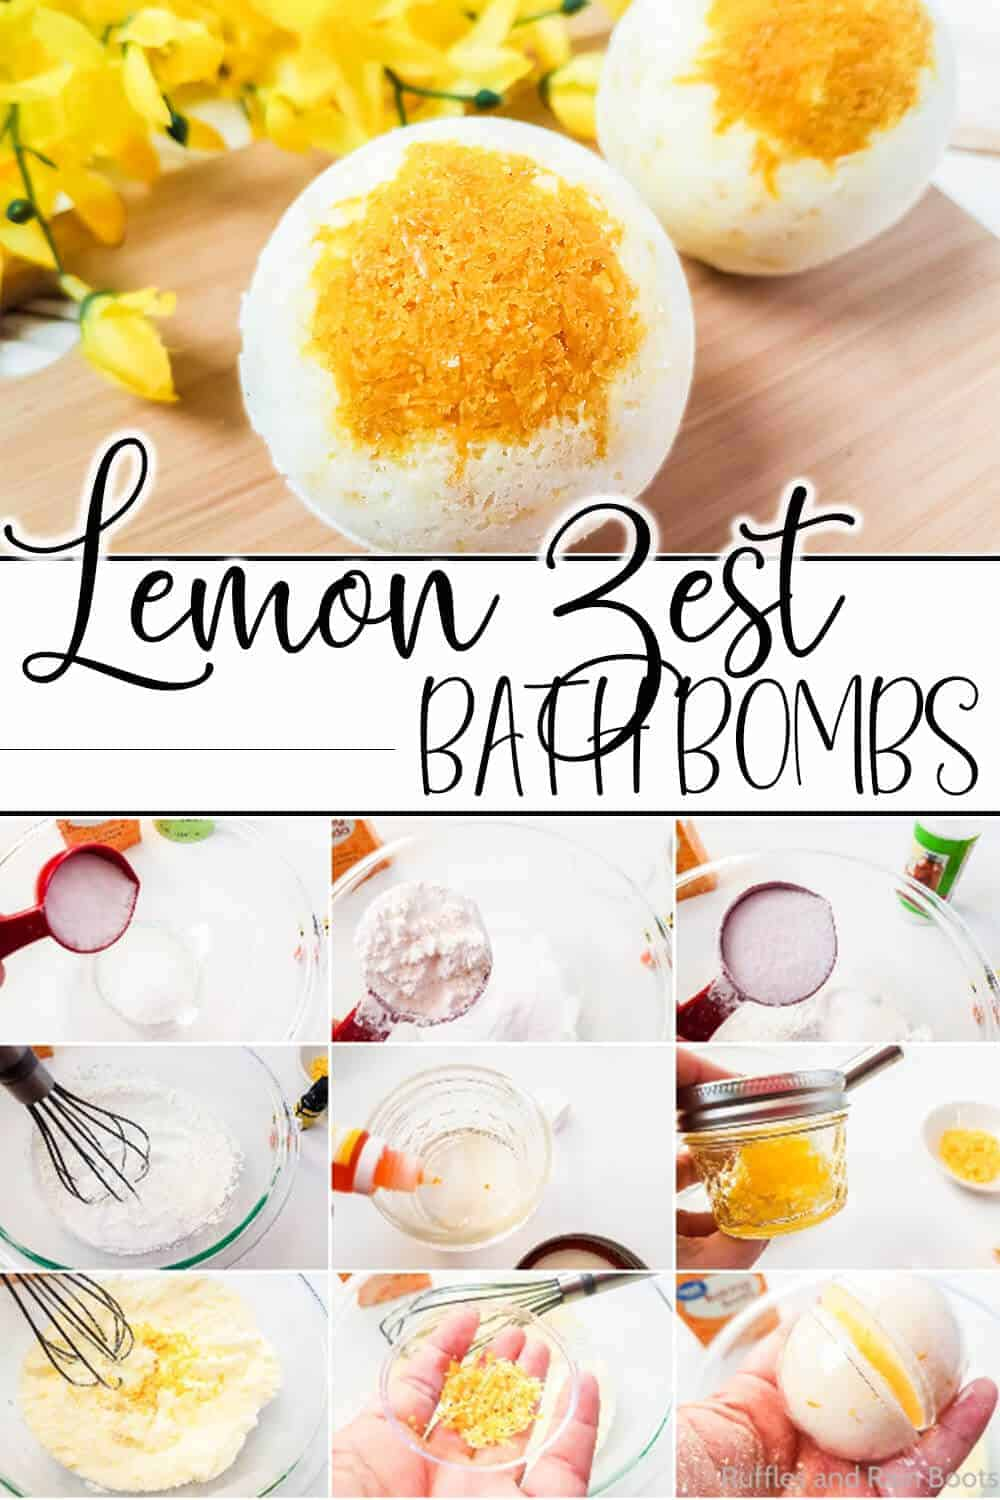 photo collage of easy bath bombs with lemon with text which reads lemon zest bath bombs